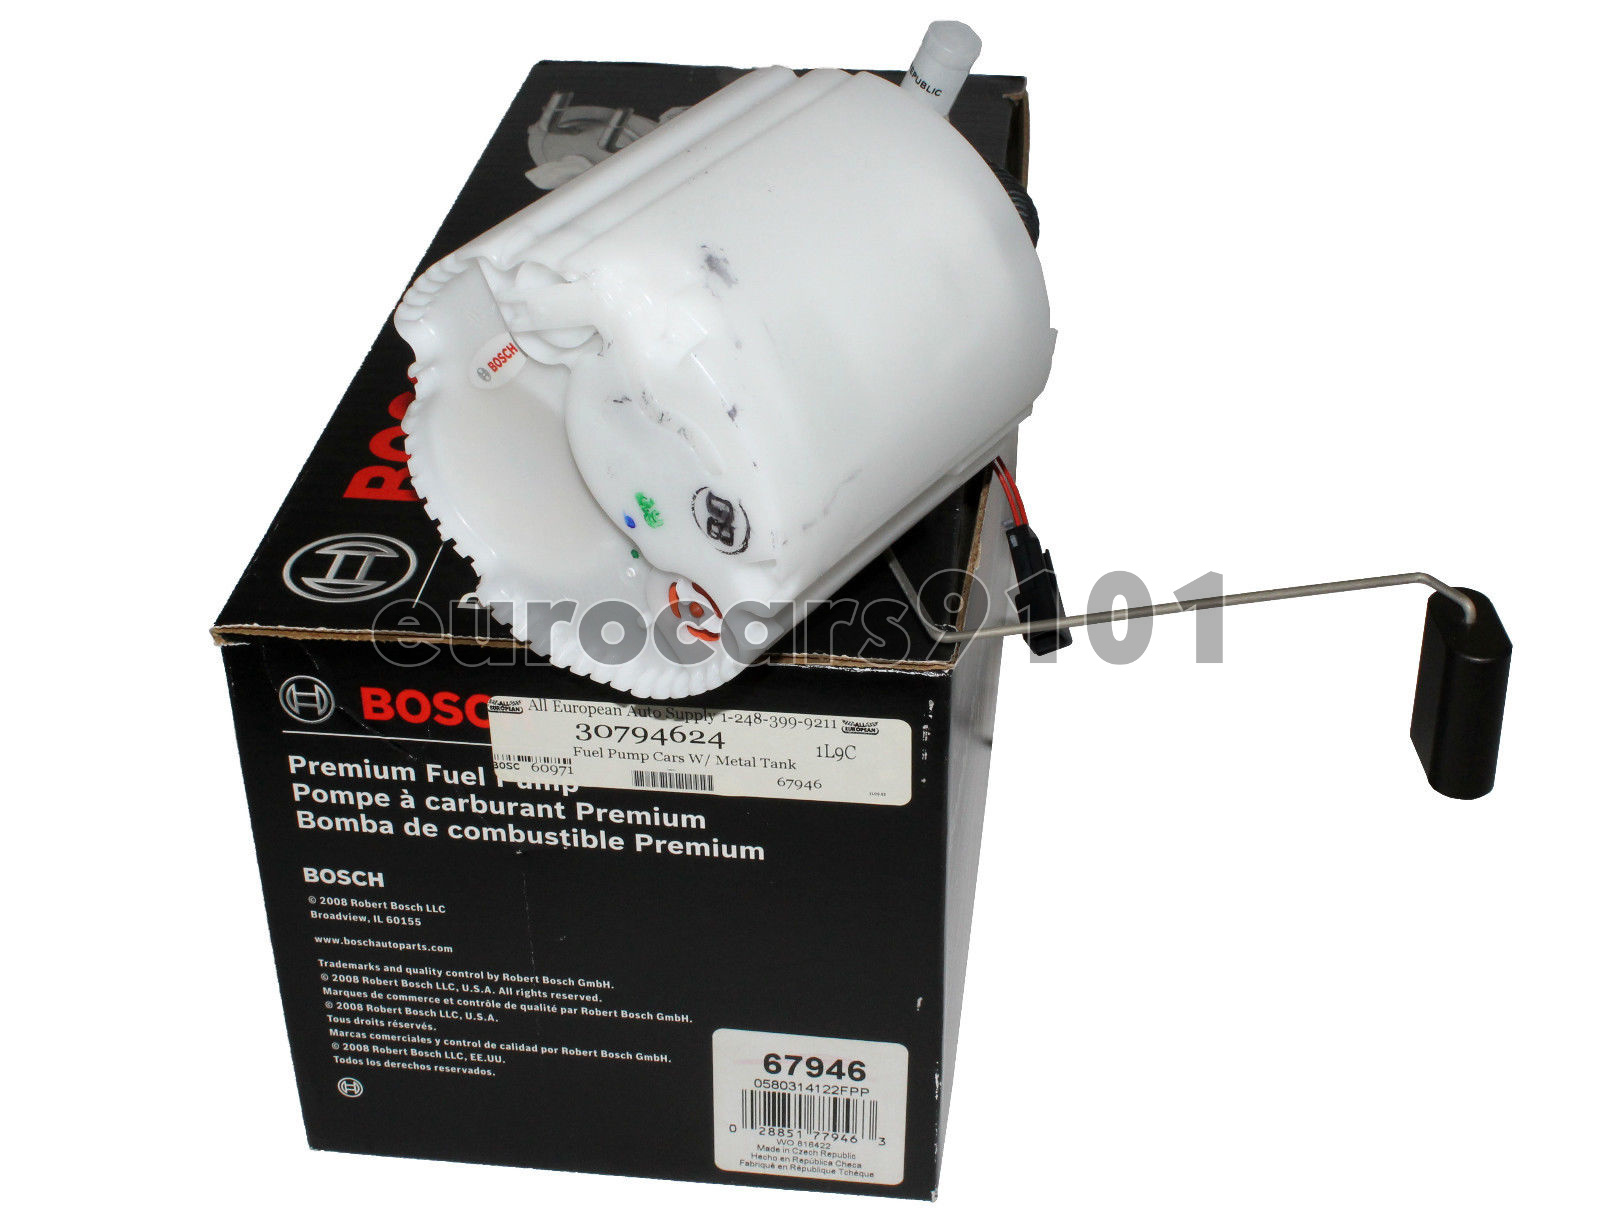 Volvo XC90 Bosch Fuel Pump Module Assembly 69958 30761745 New